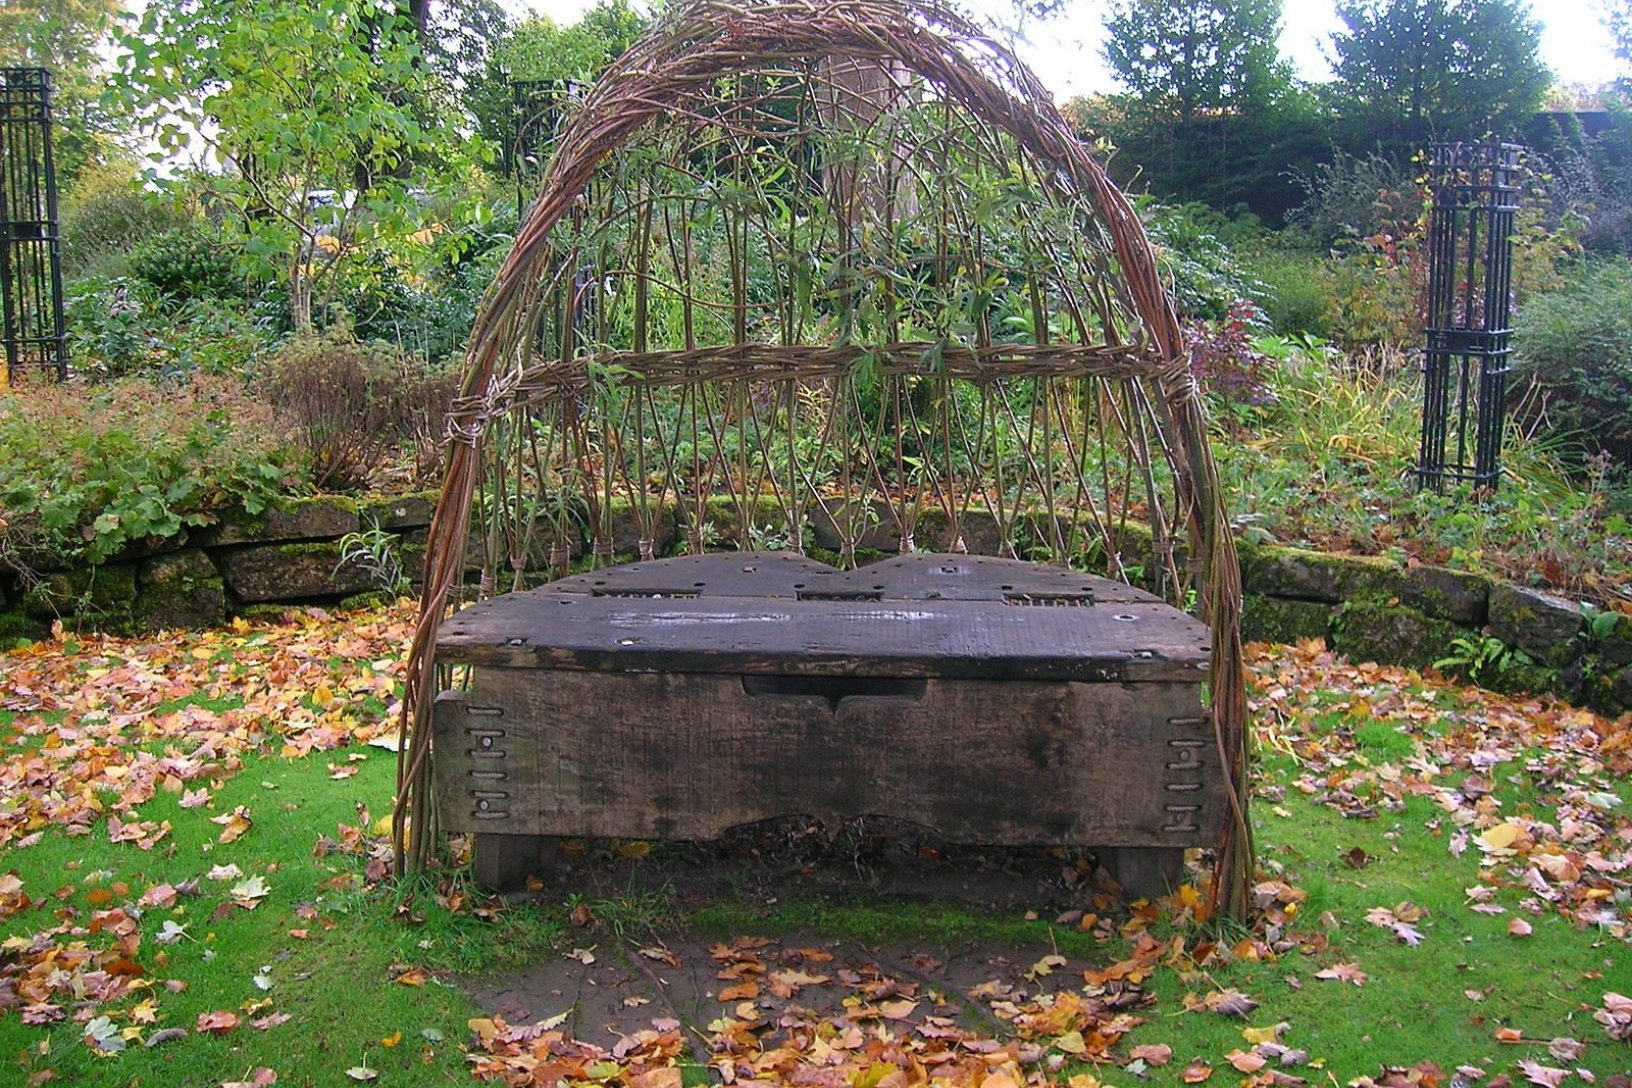 Willow structure 1